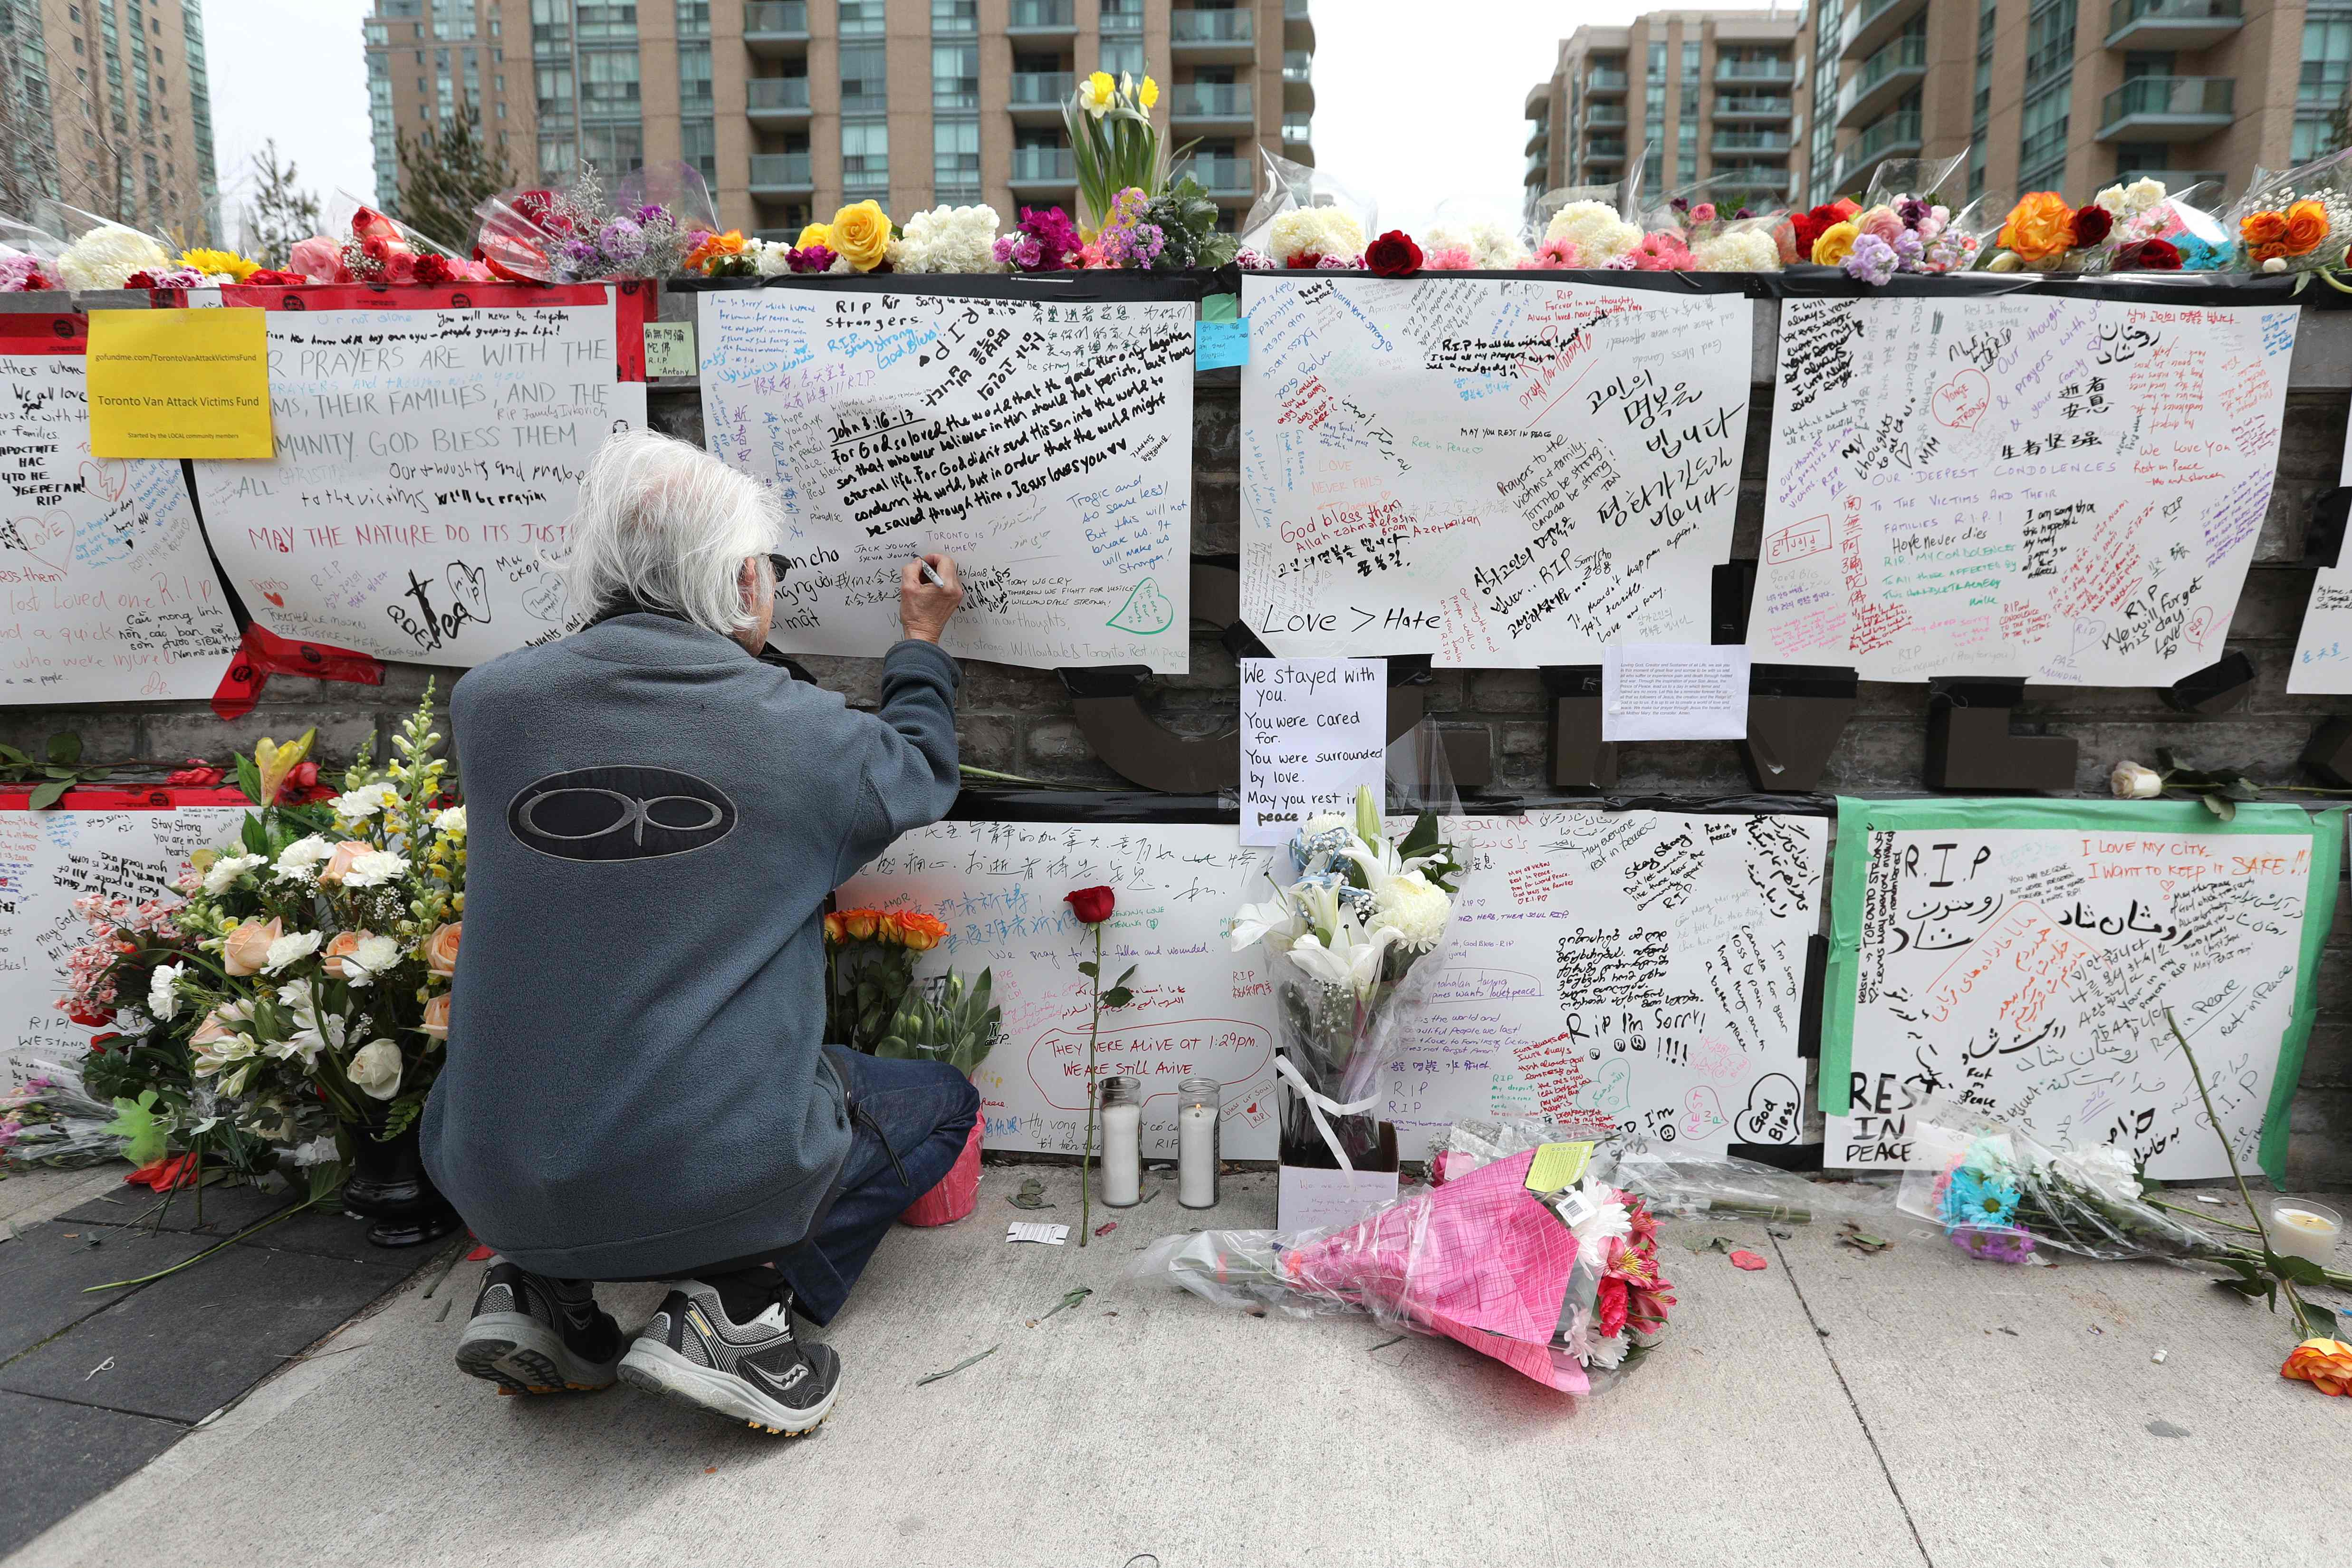 Video in Toronto killings shows a divide between U.S. and Canada on deadly force